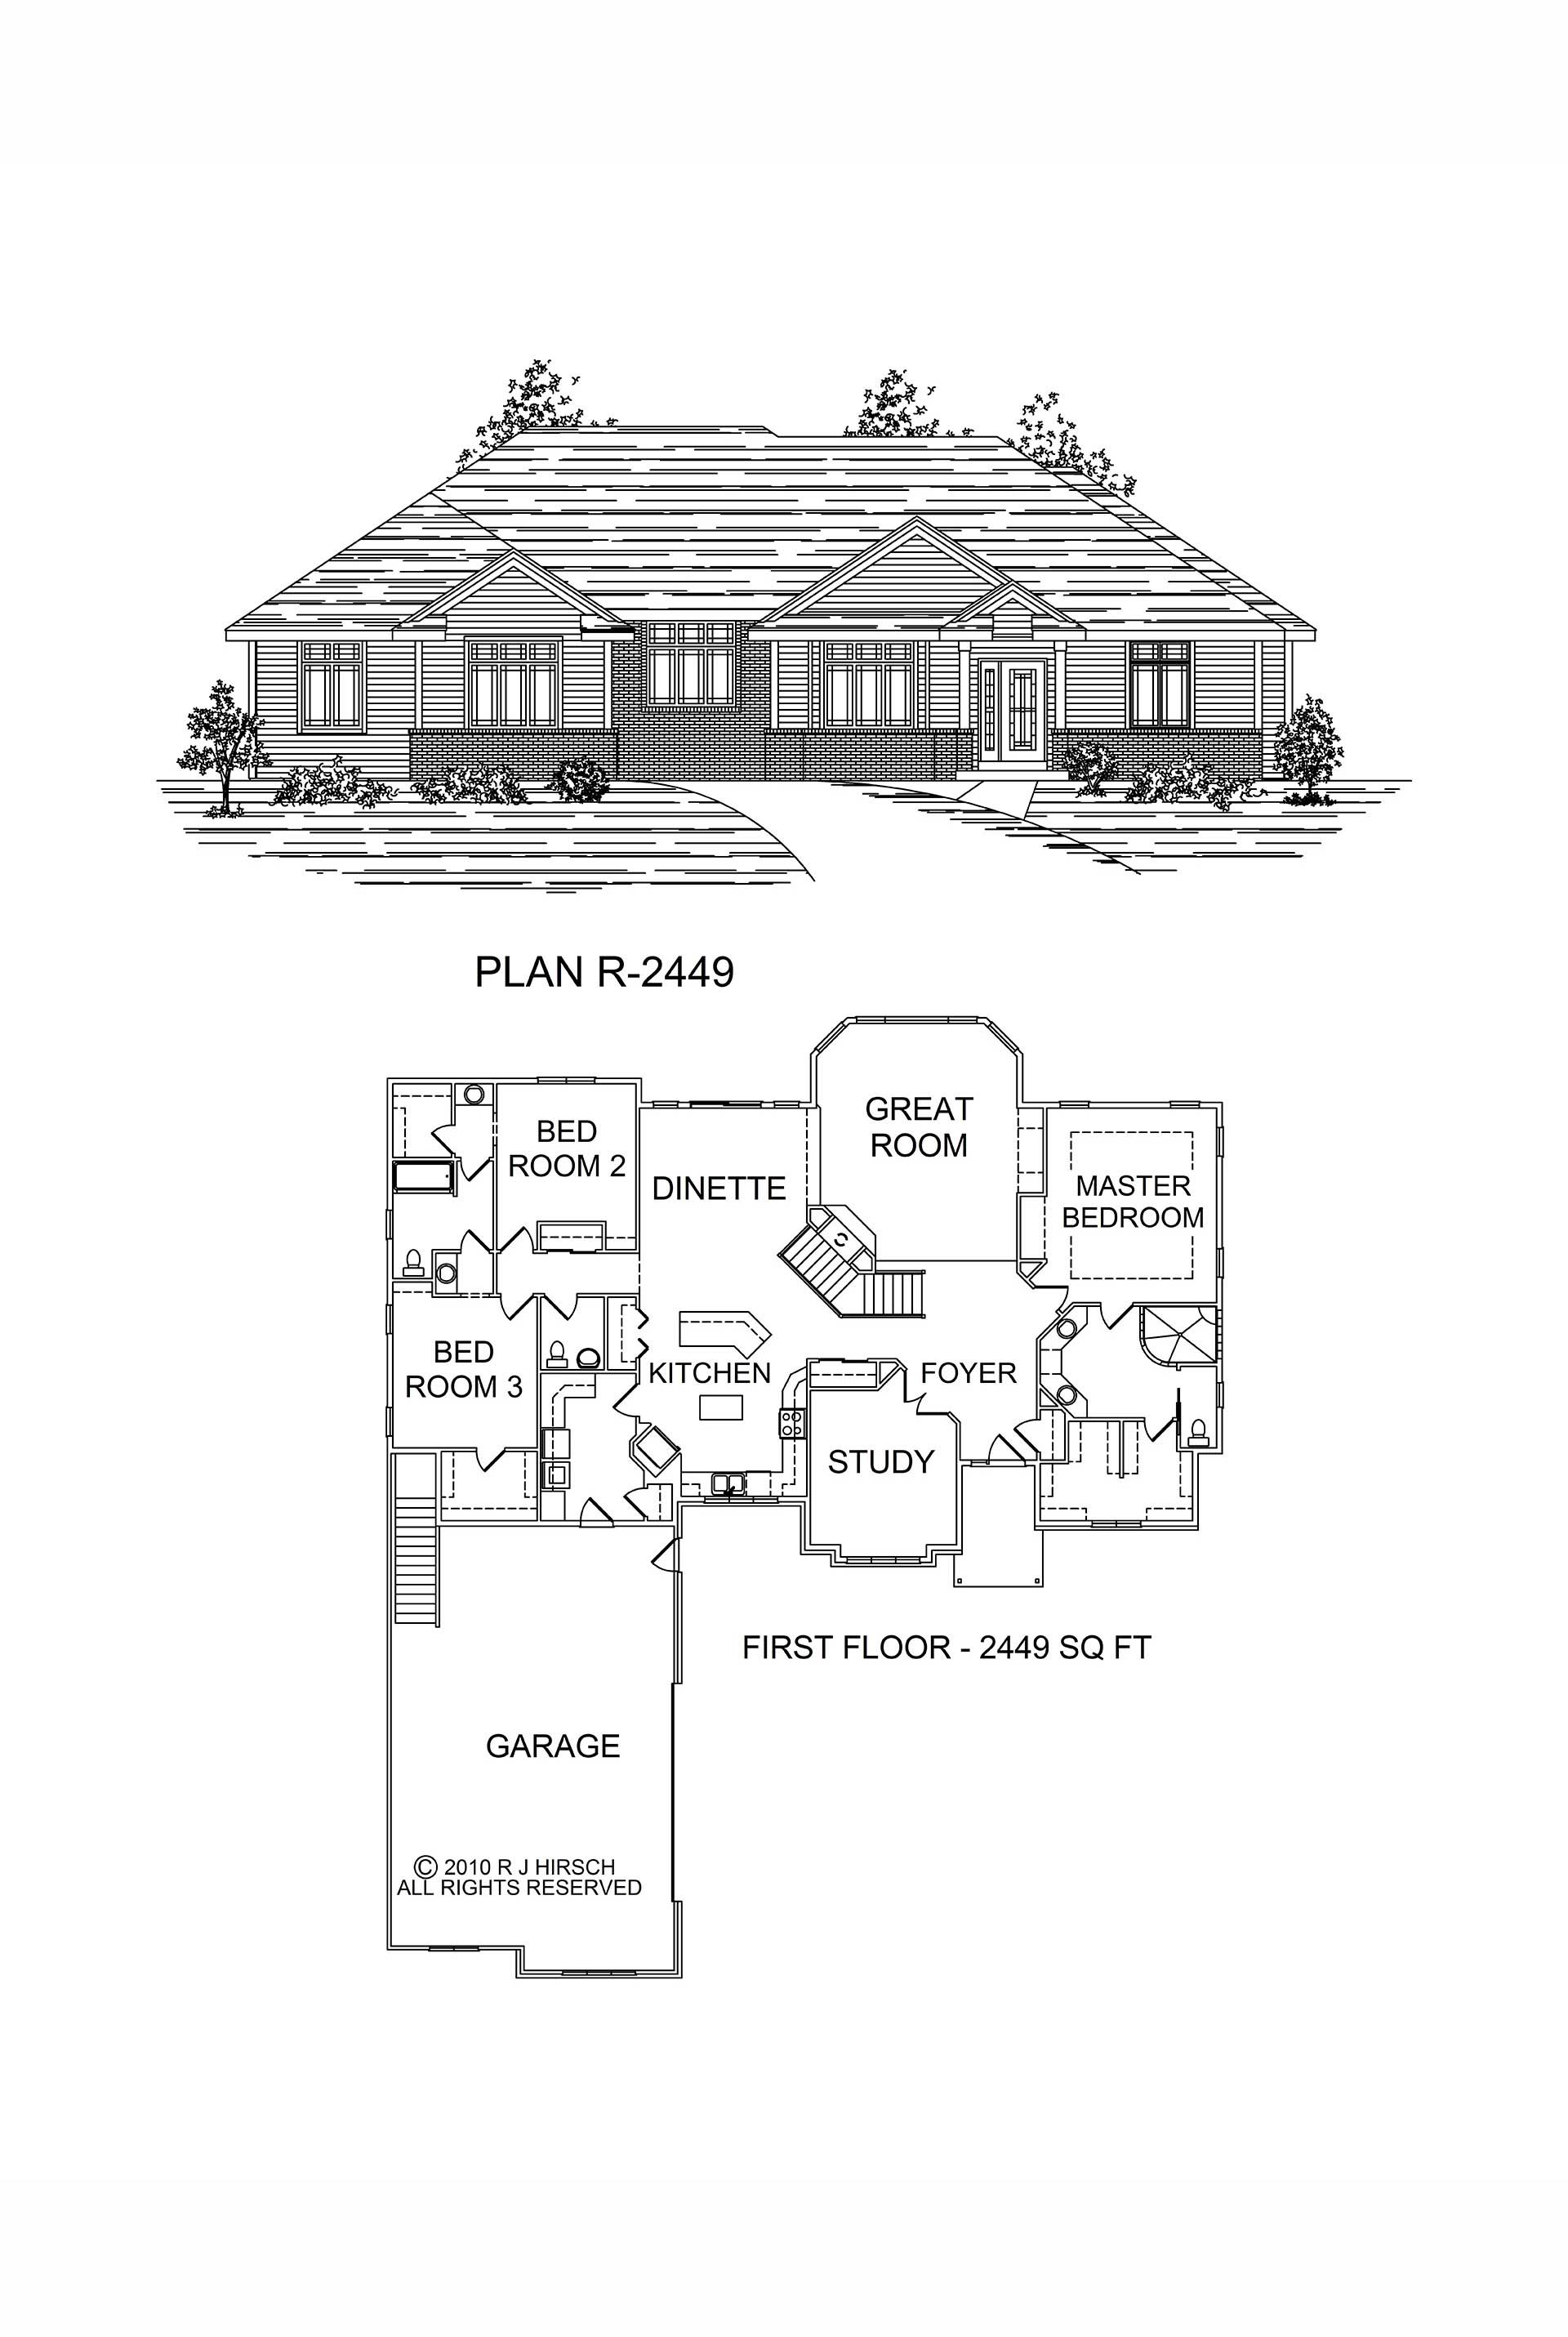 ranch plans - Design Homes Wi